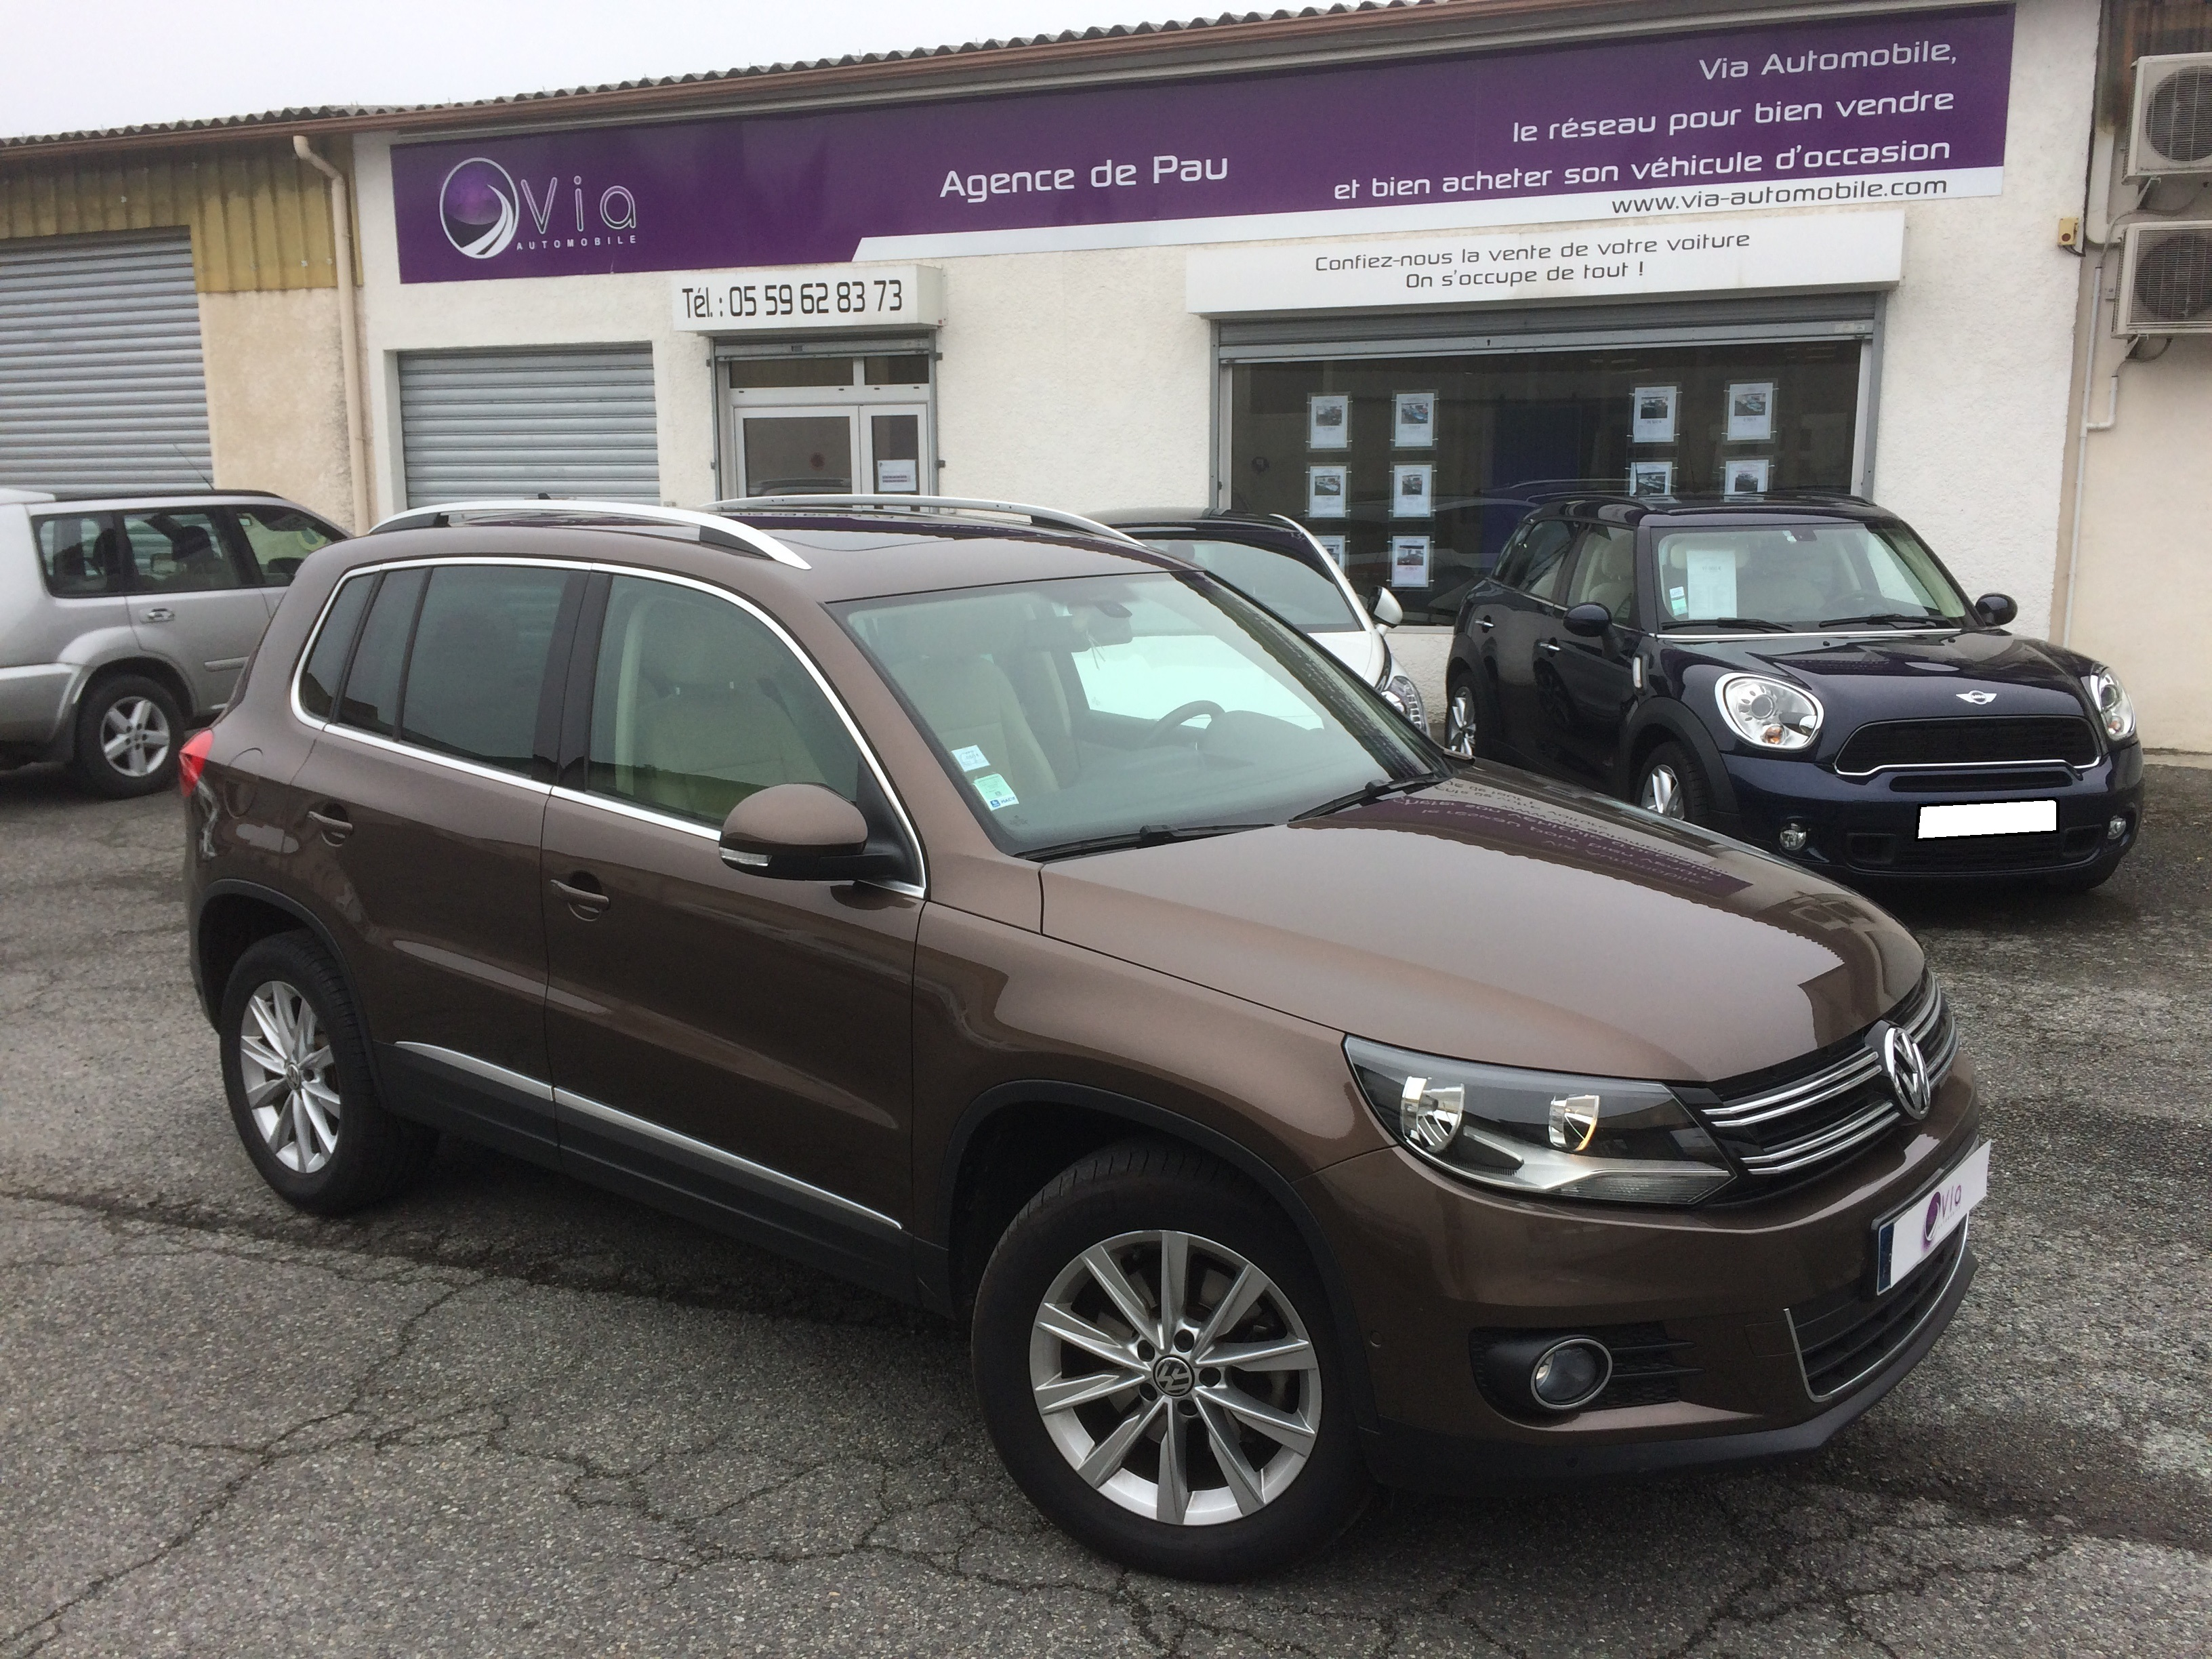 voiture volkswagen tiguan 2 0 tdi 140 fap bluemotion technology carat occasion 2012 48000 km. Black Bedroom Furniture Sets. Home Design Ideas